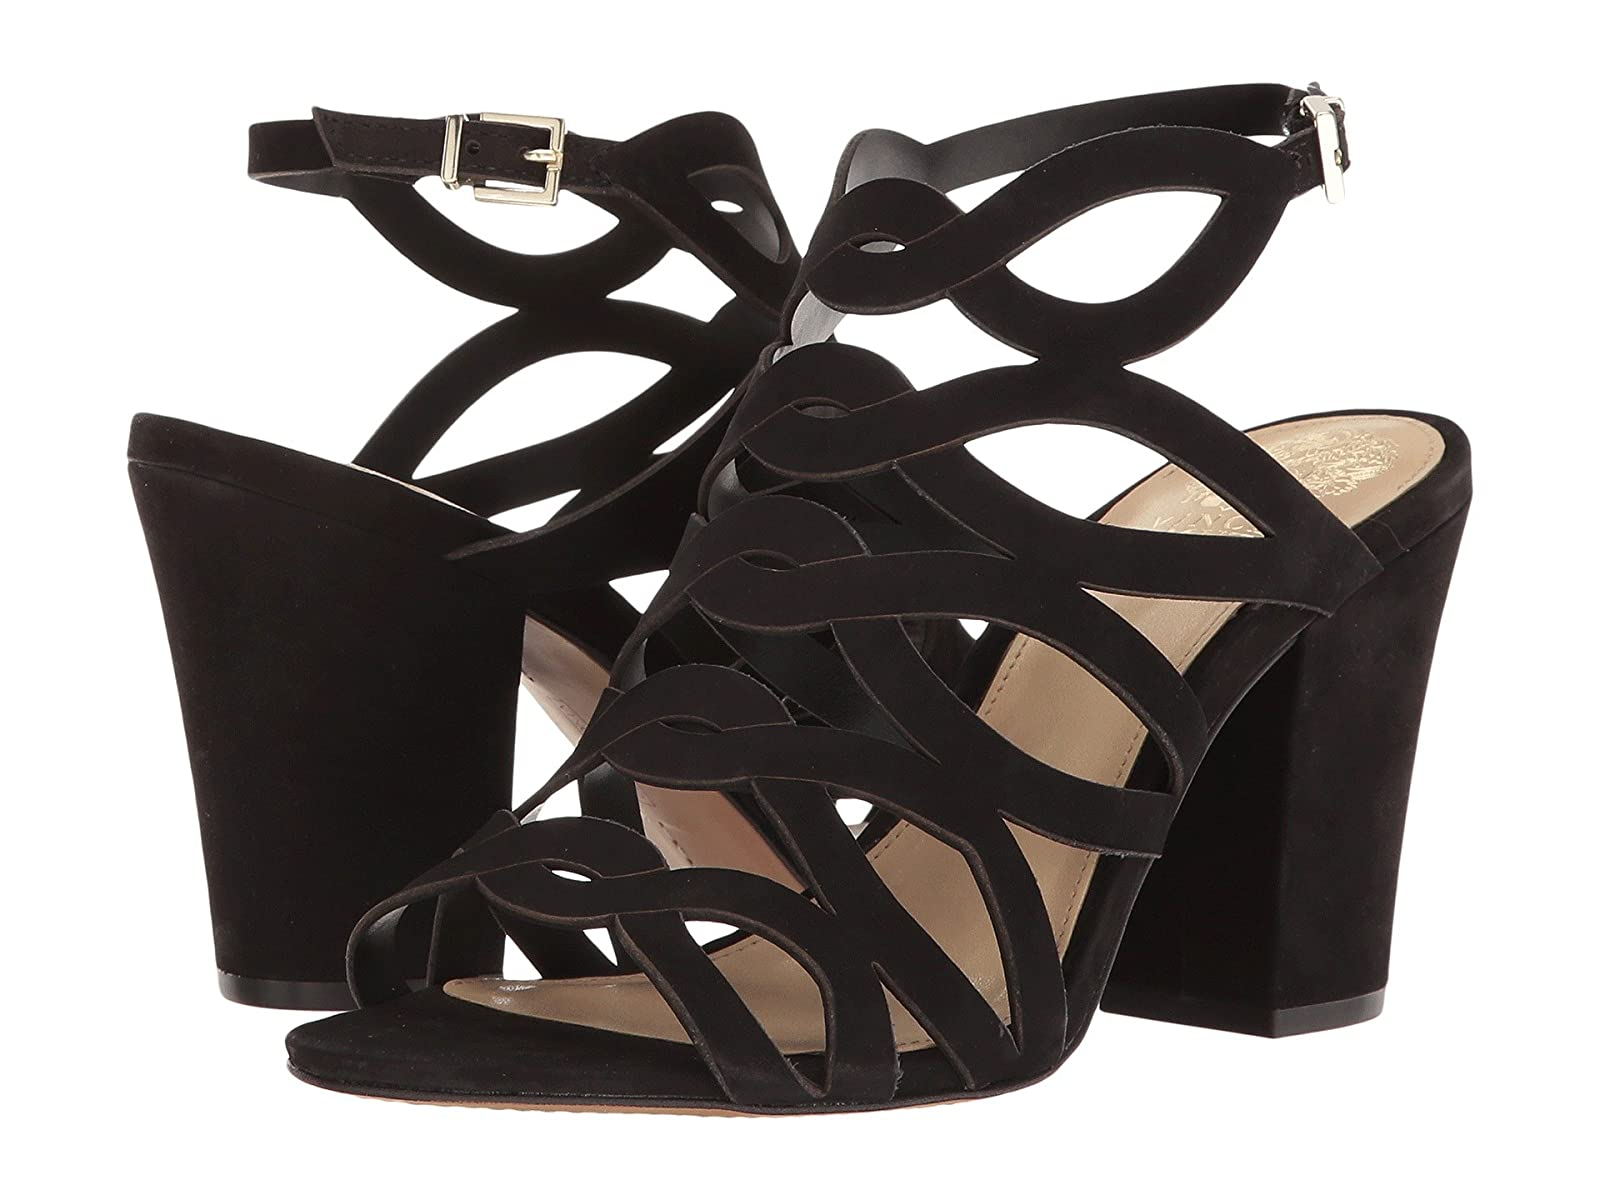 Vince Camuto NorlaCheap and distinctive eye-catching shoes